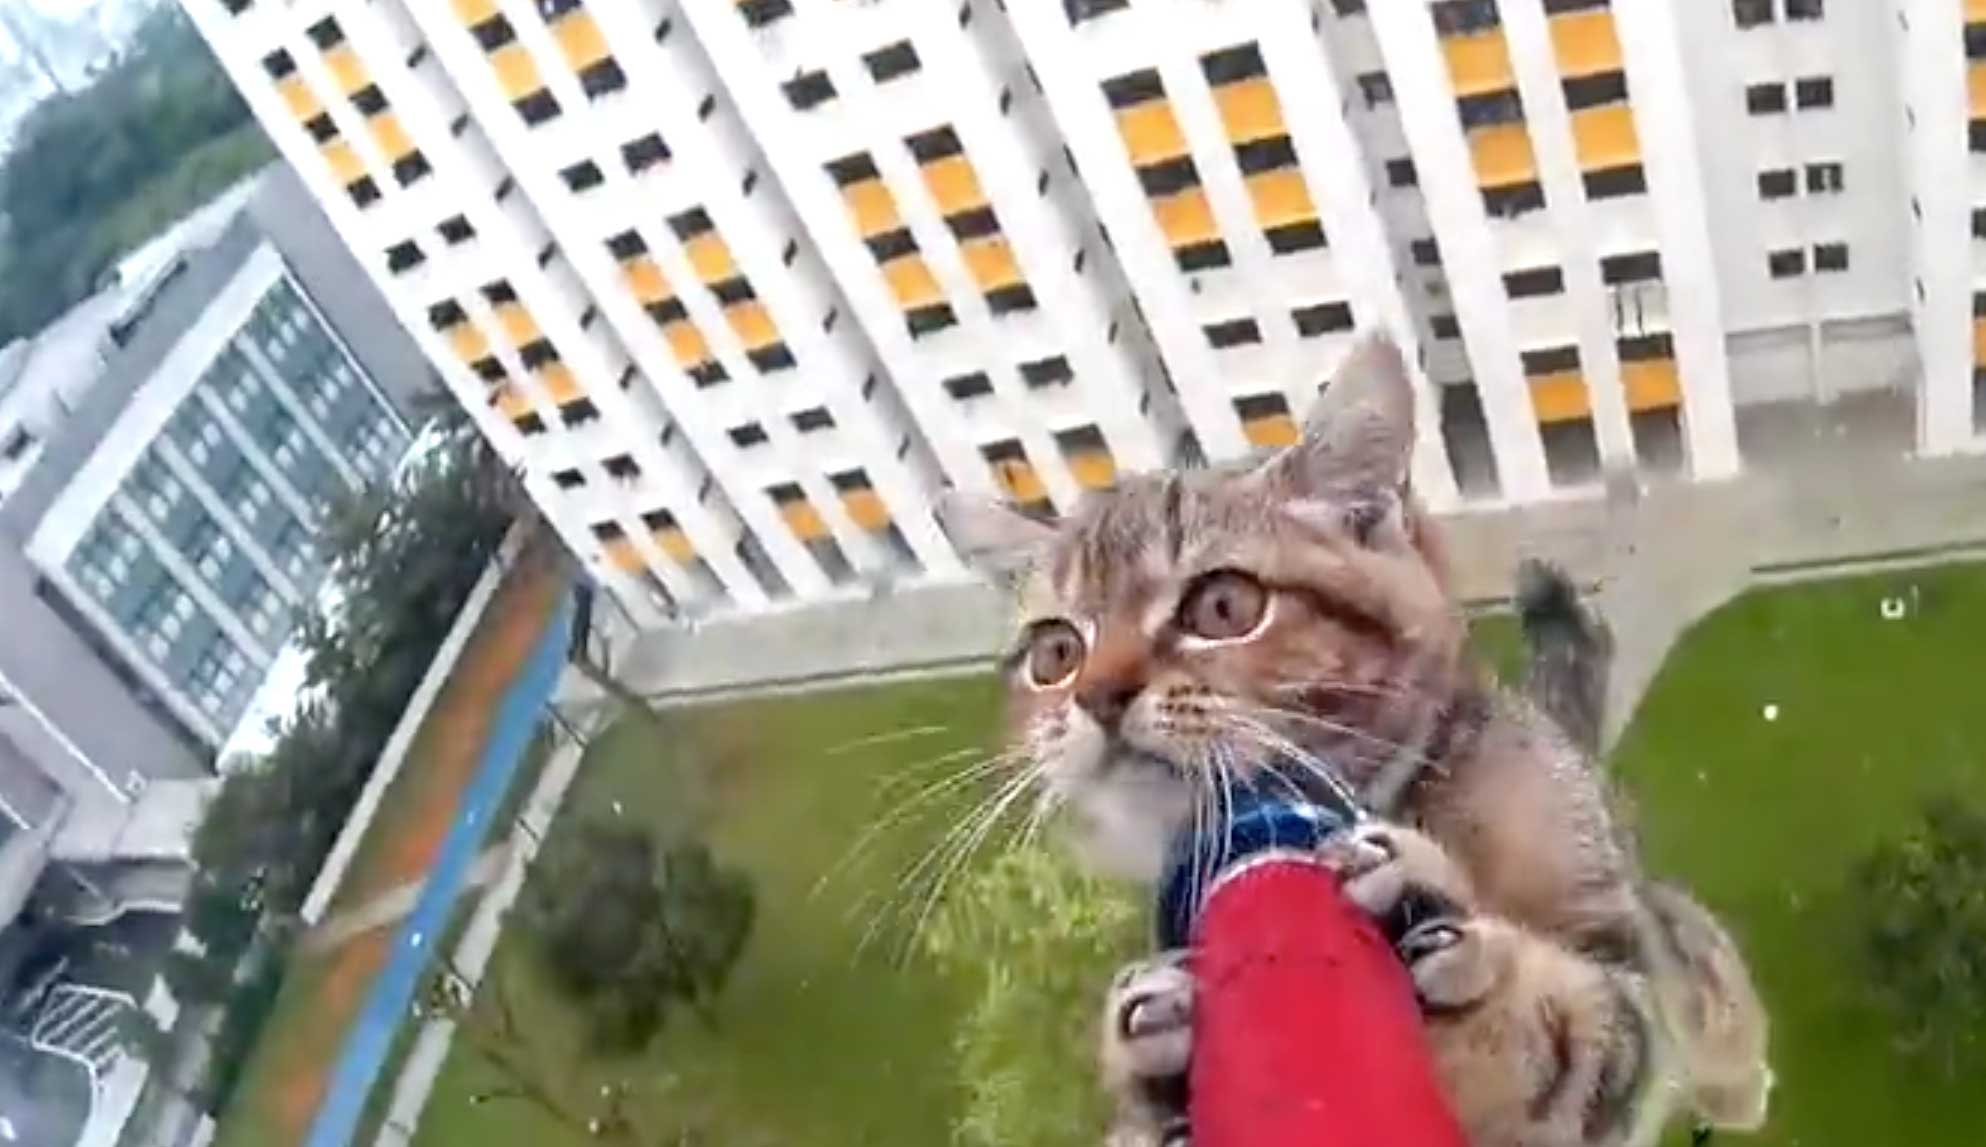 kittensavedfromledge.jpg - Helpless Kitten Stranded On A Ledge Was Saved By Rescue Officer